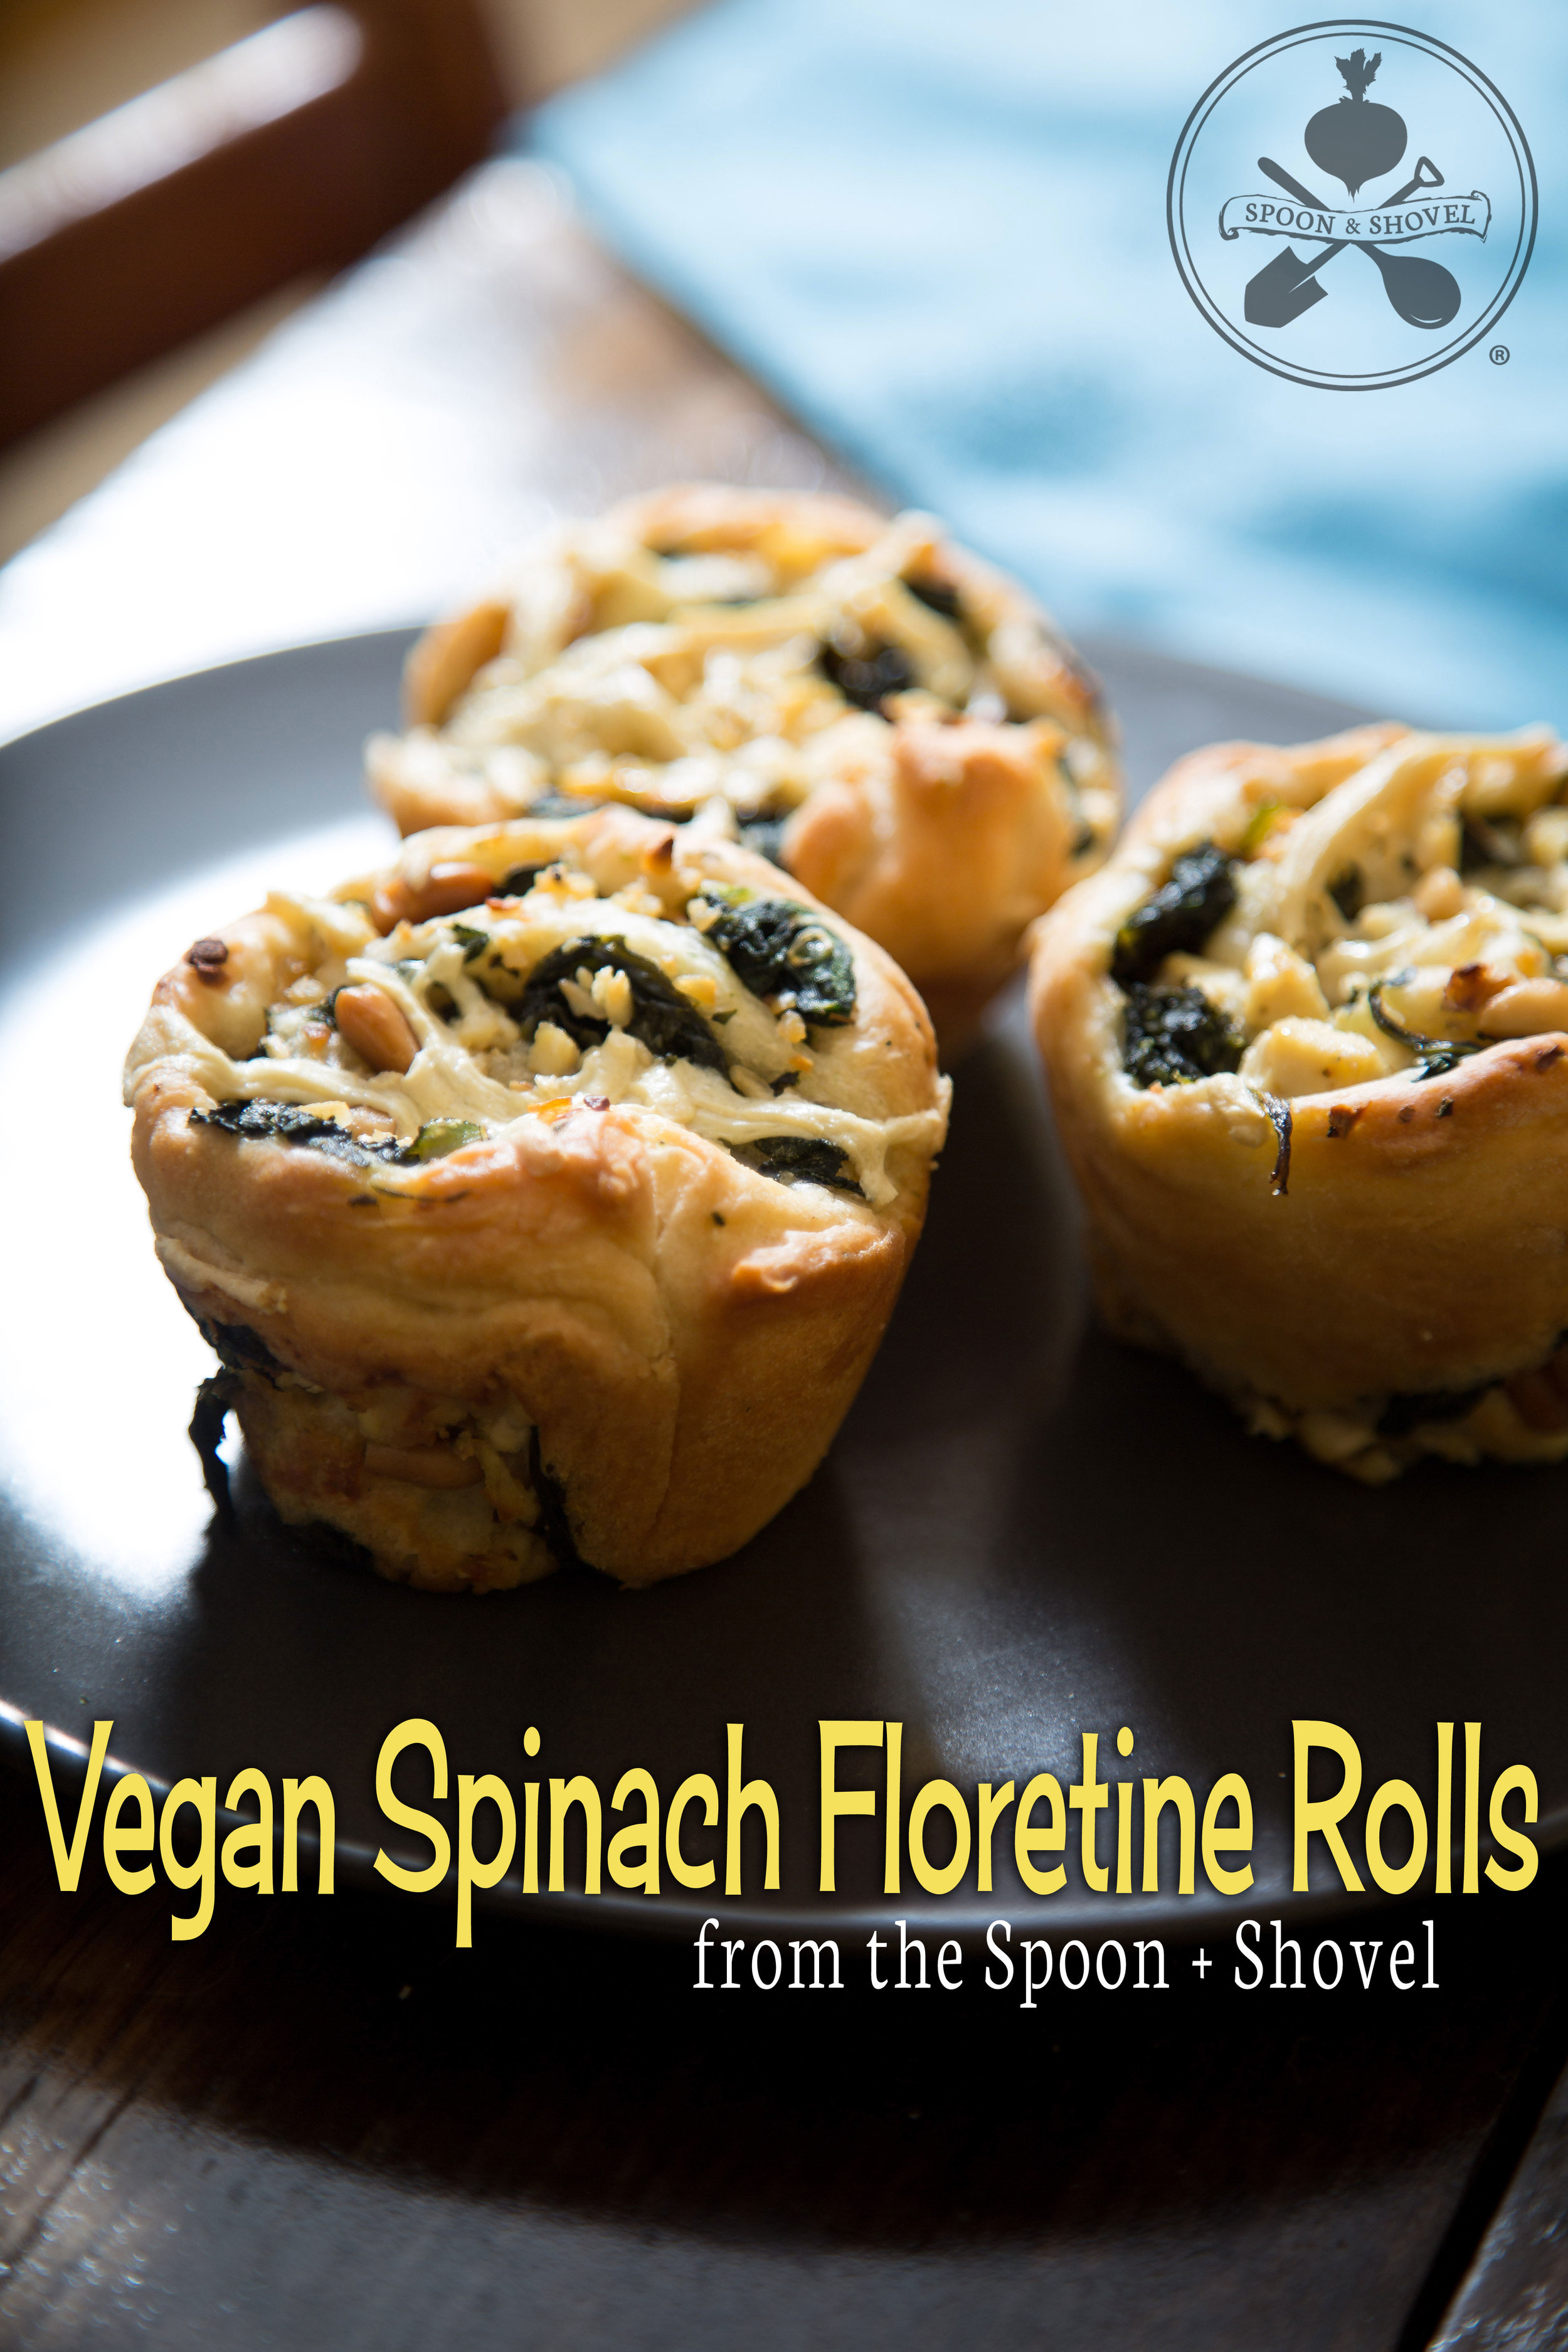 Vegan spinach Florentine rolls from The Spoon + Shovel